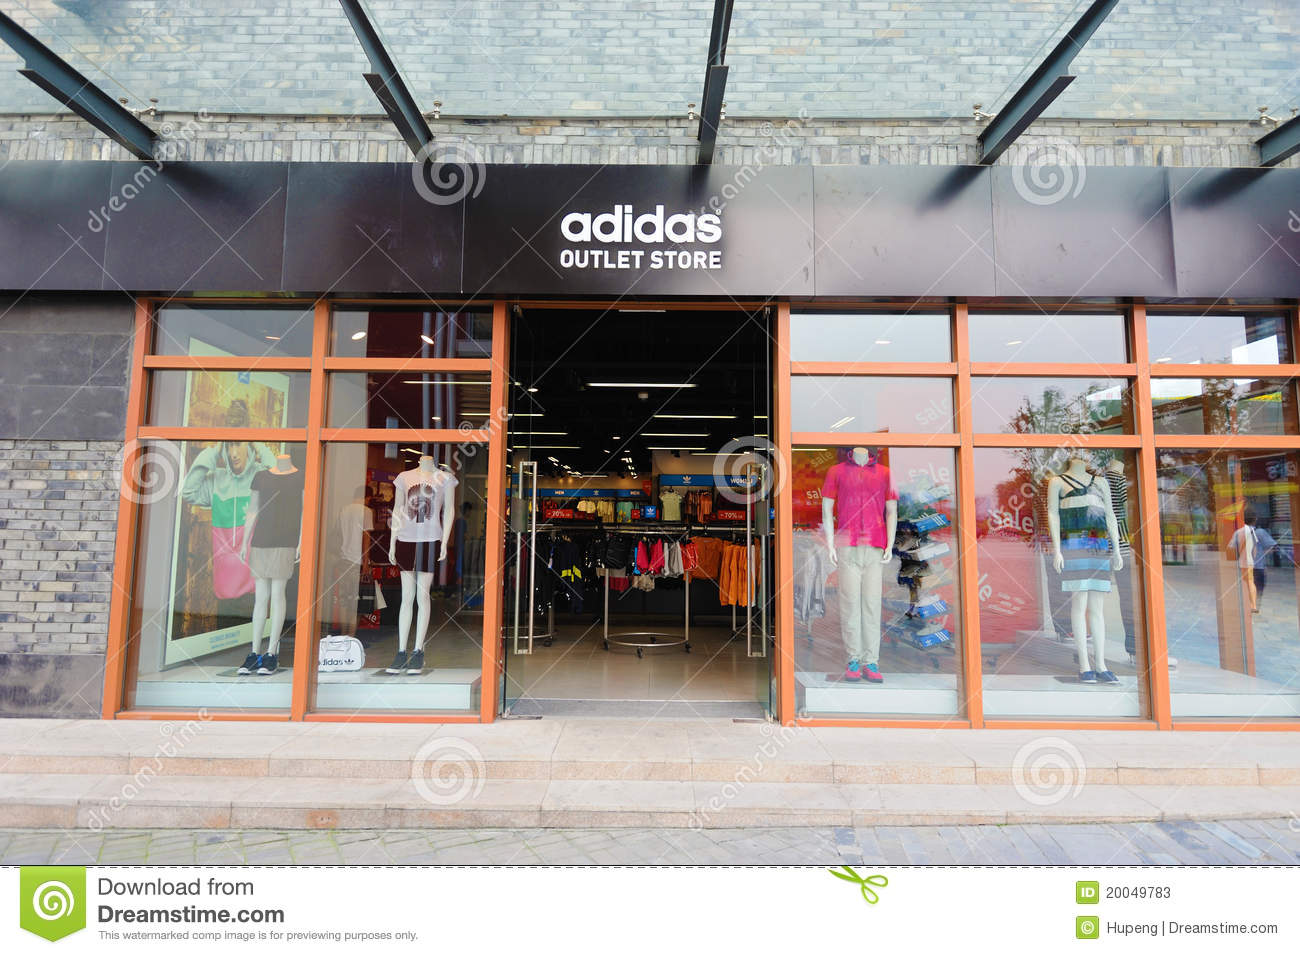 Browse the latest adidas products and shop online with us today. adidas was founded on a love for sports by a keen athlete looking to better the overall sporting experience. Churning out ground-breaking innovations with every new release, adidas has been beefing up performance amongst talented players and turning them into medal winners since